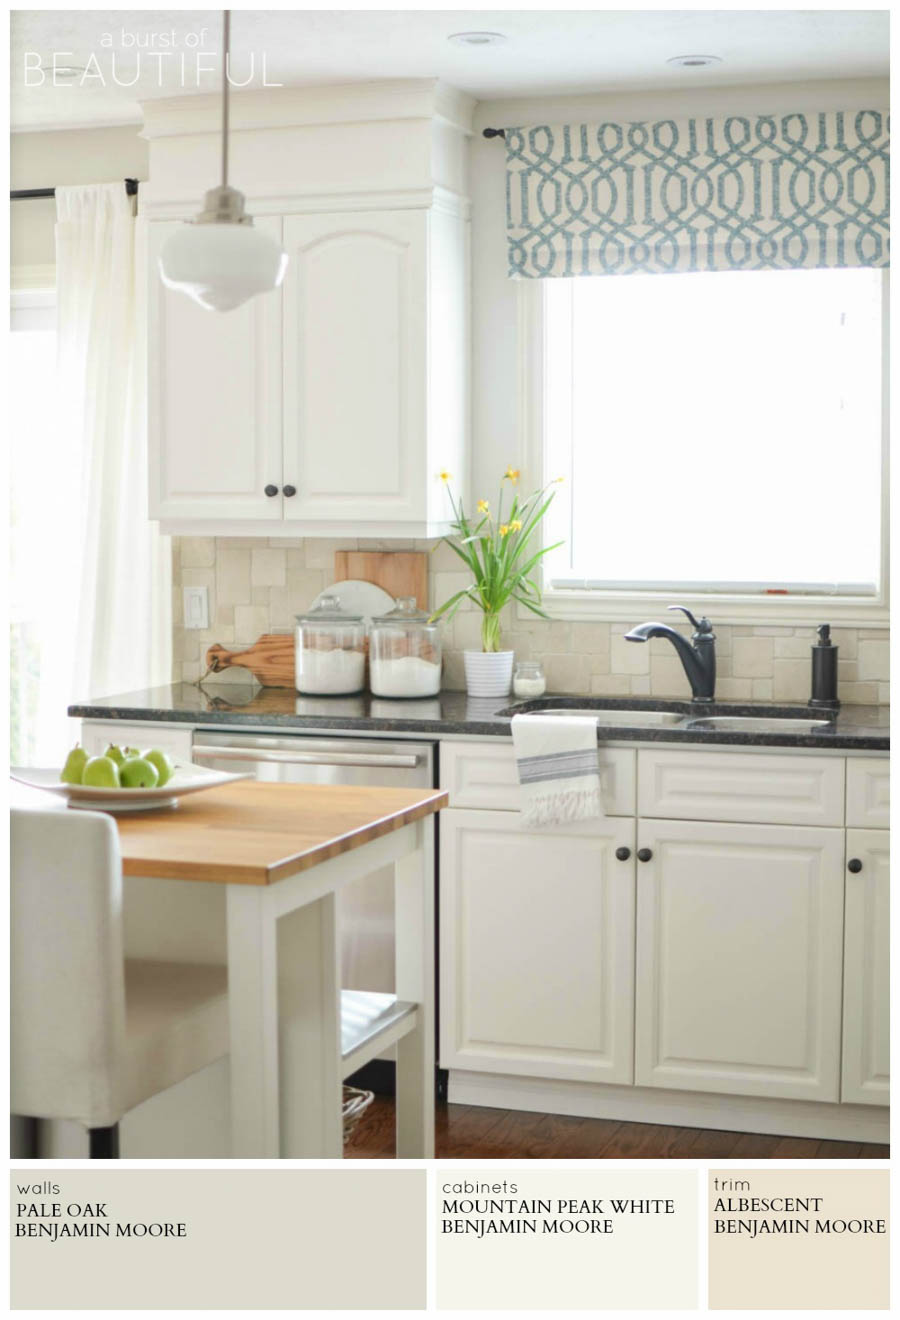 Best Kitchen Gallery: Modern Farmhouse Neutral Paint Colors A Burst Of Beautiful of Farmhouse Kitchen Paint Colors on rachelxblog.com